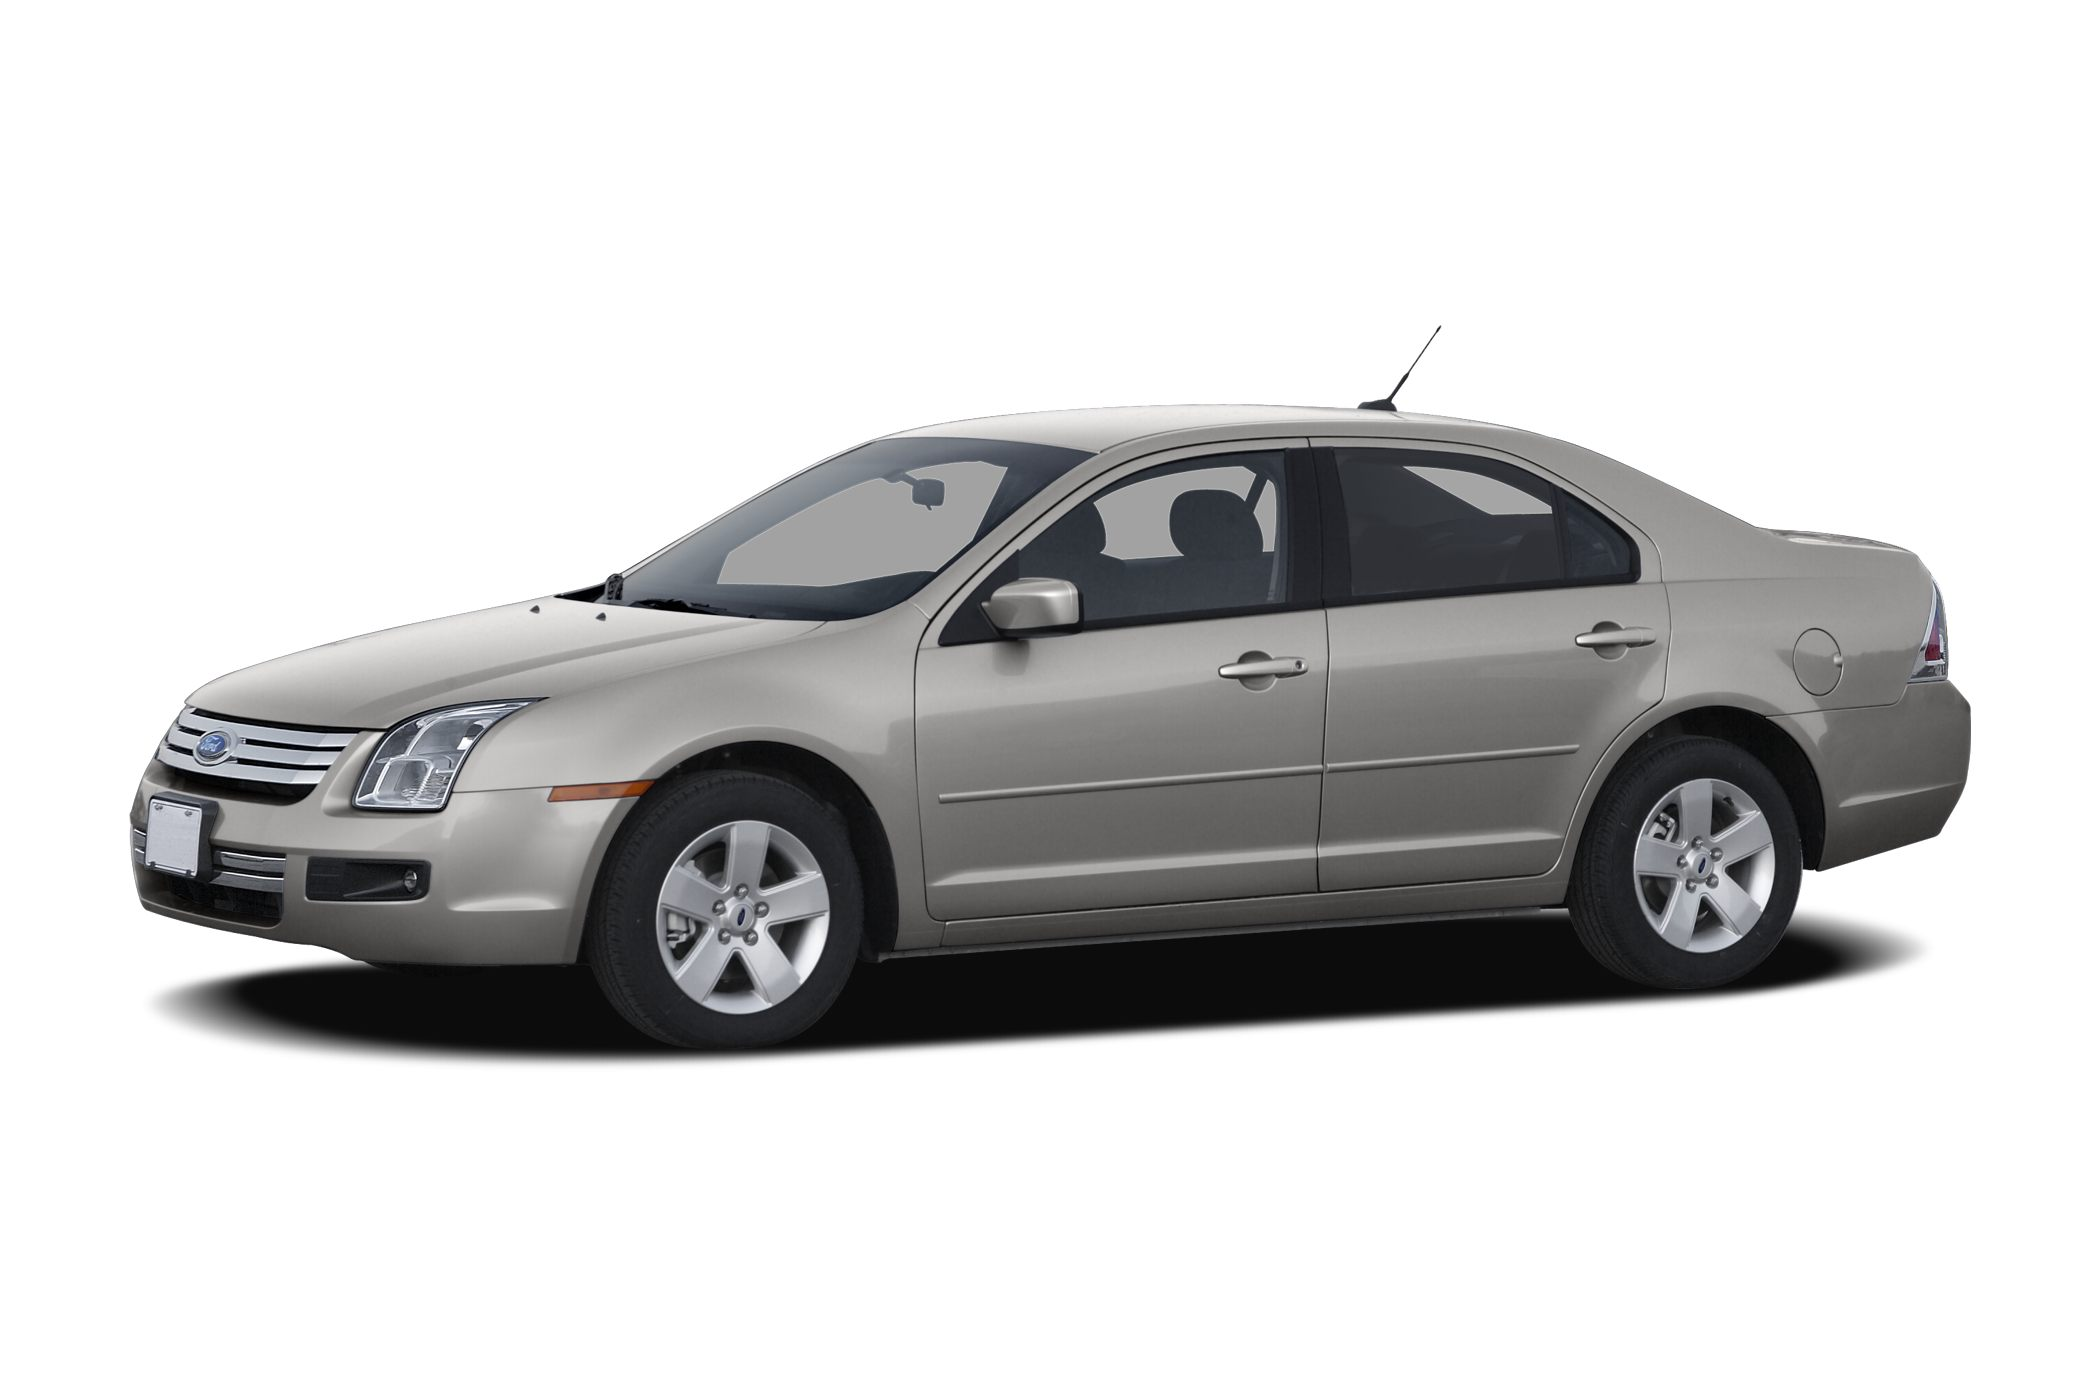 Cars for Sale by Chicago Elegant Chicago Il Used Cars for Sale Less Than 2 000 Dollars